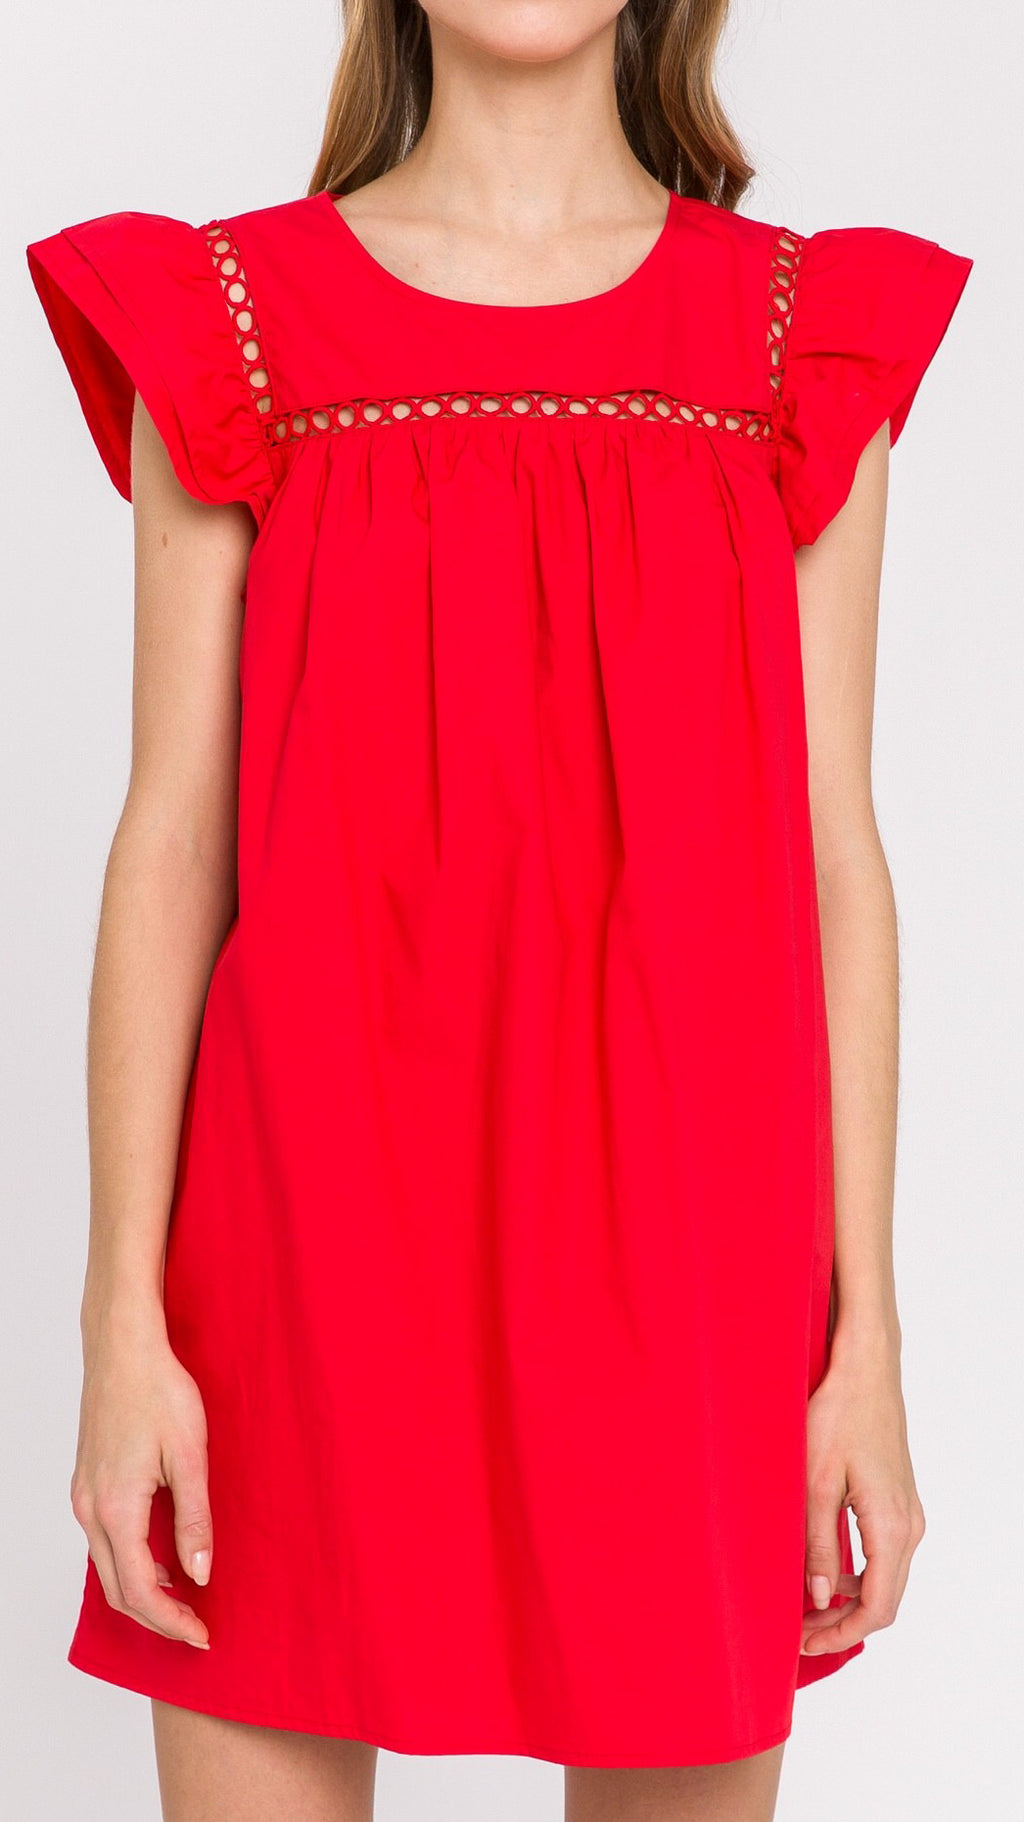 Lele Lace Trim Dress - Red